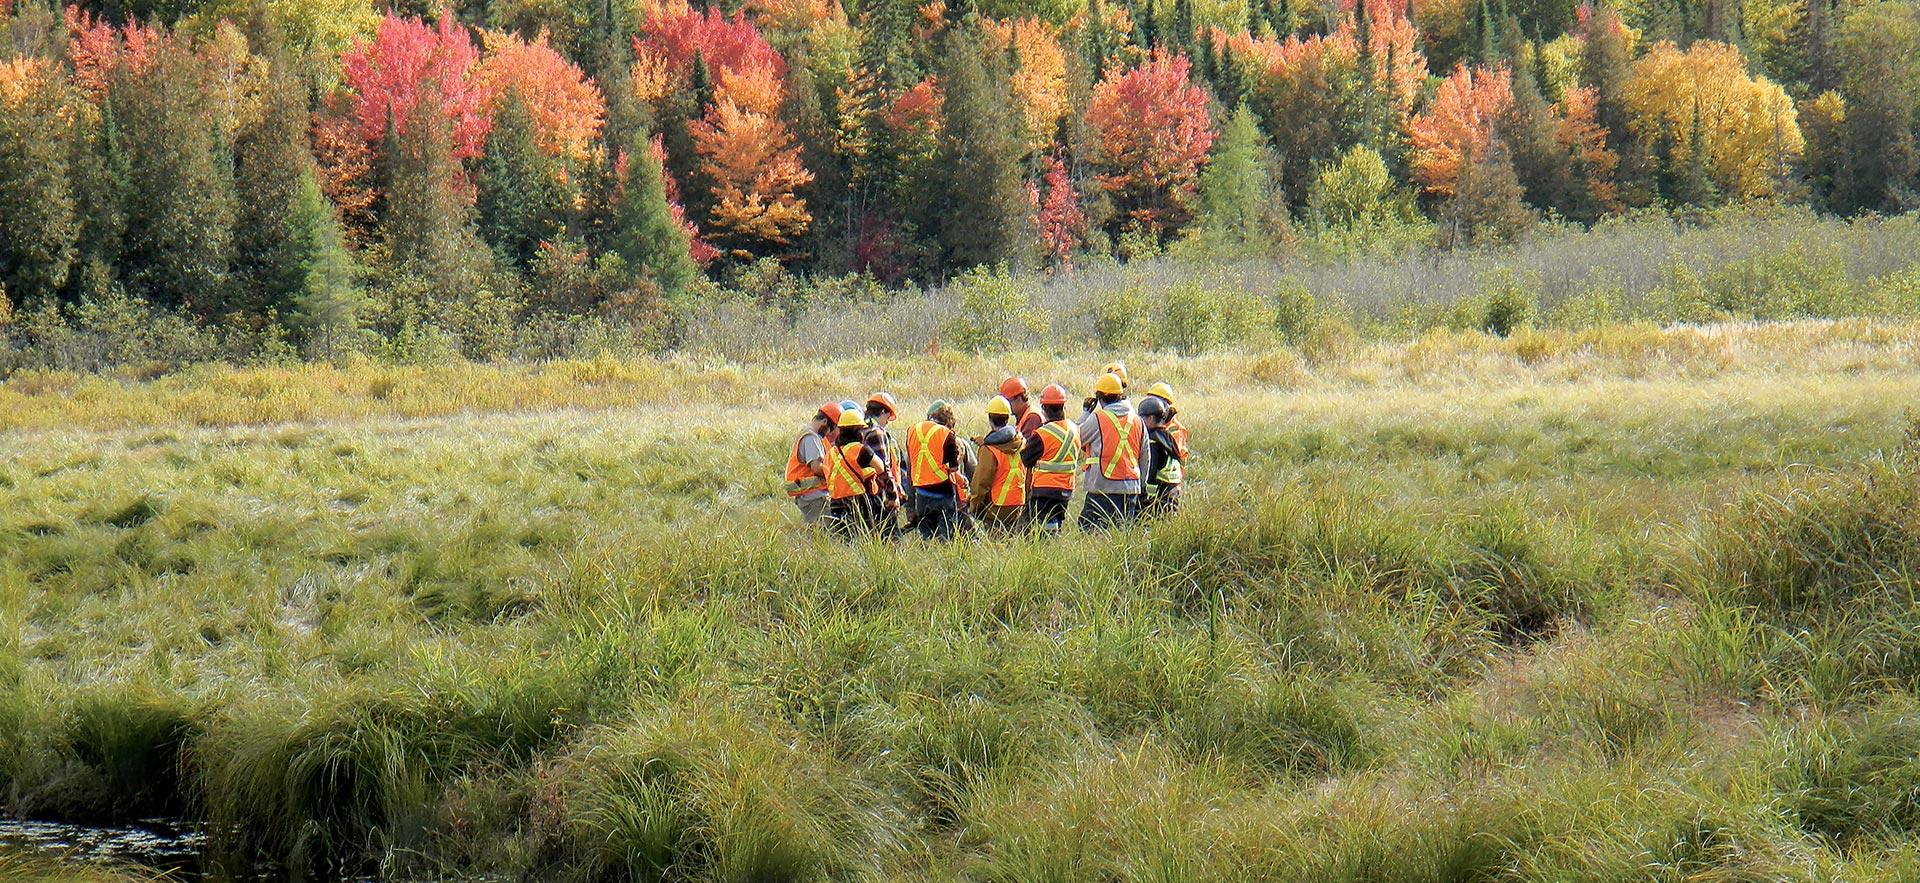 A class in Natural Environment Technician - Conservation and Management gather in a field in nature to conduct a class.